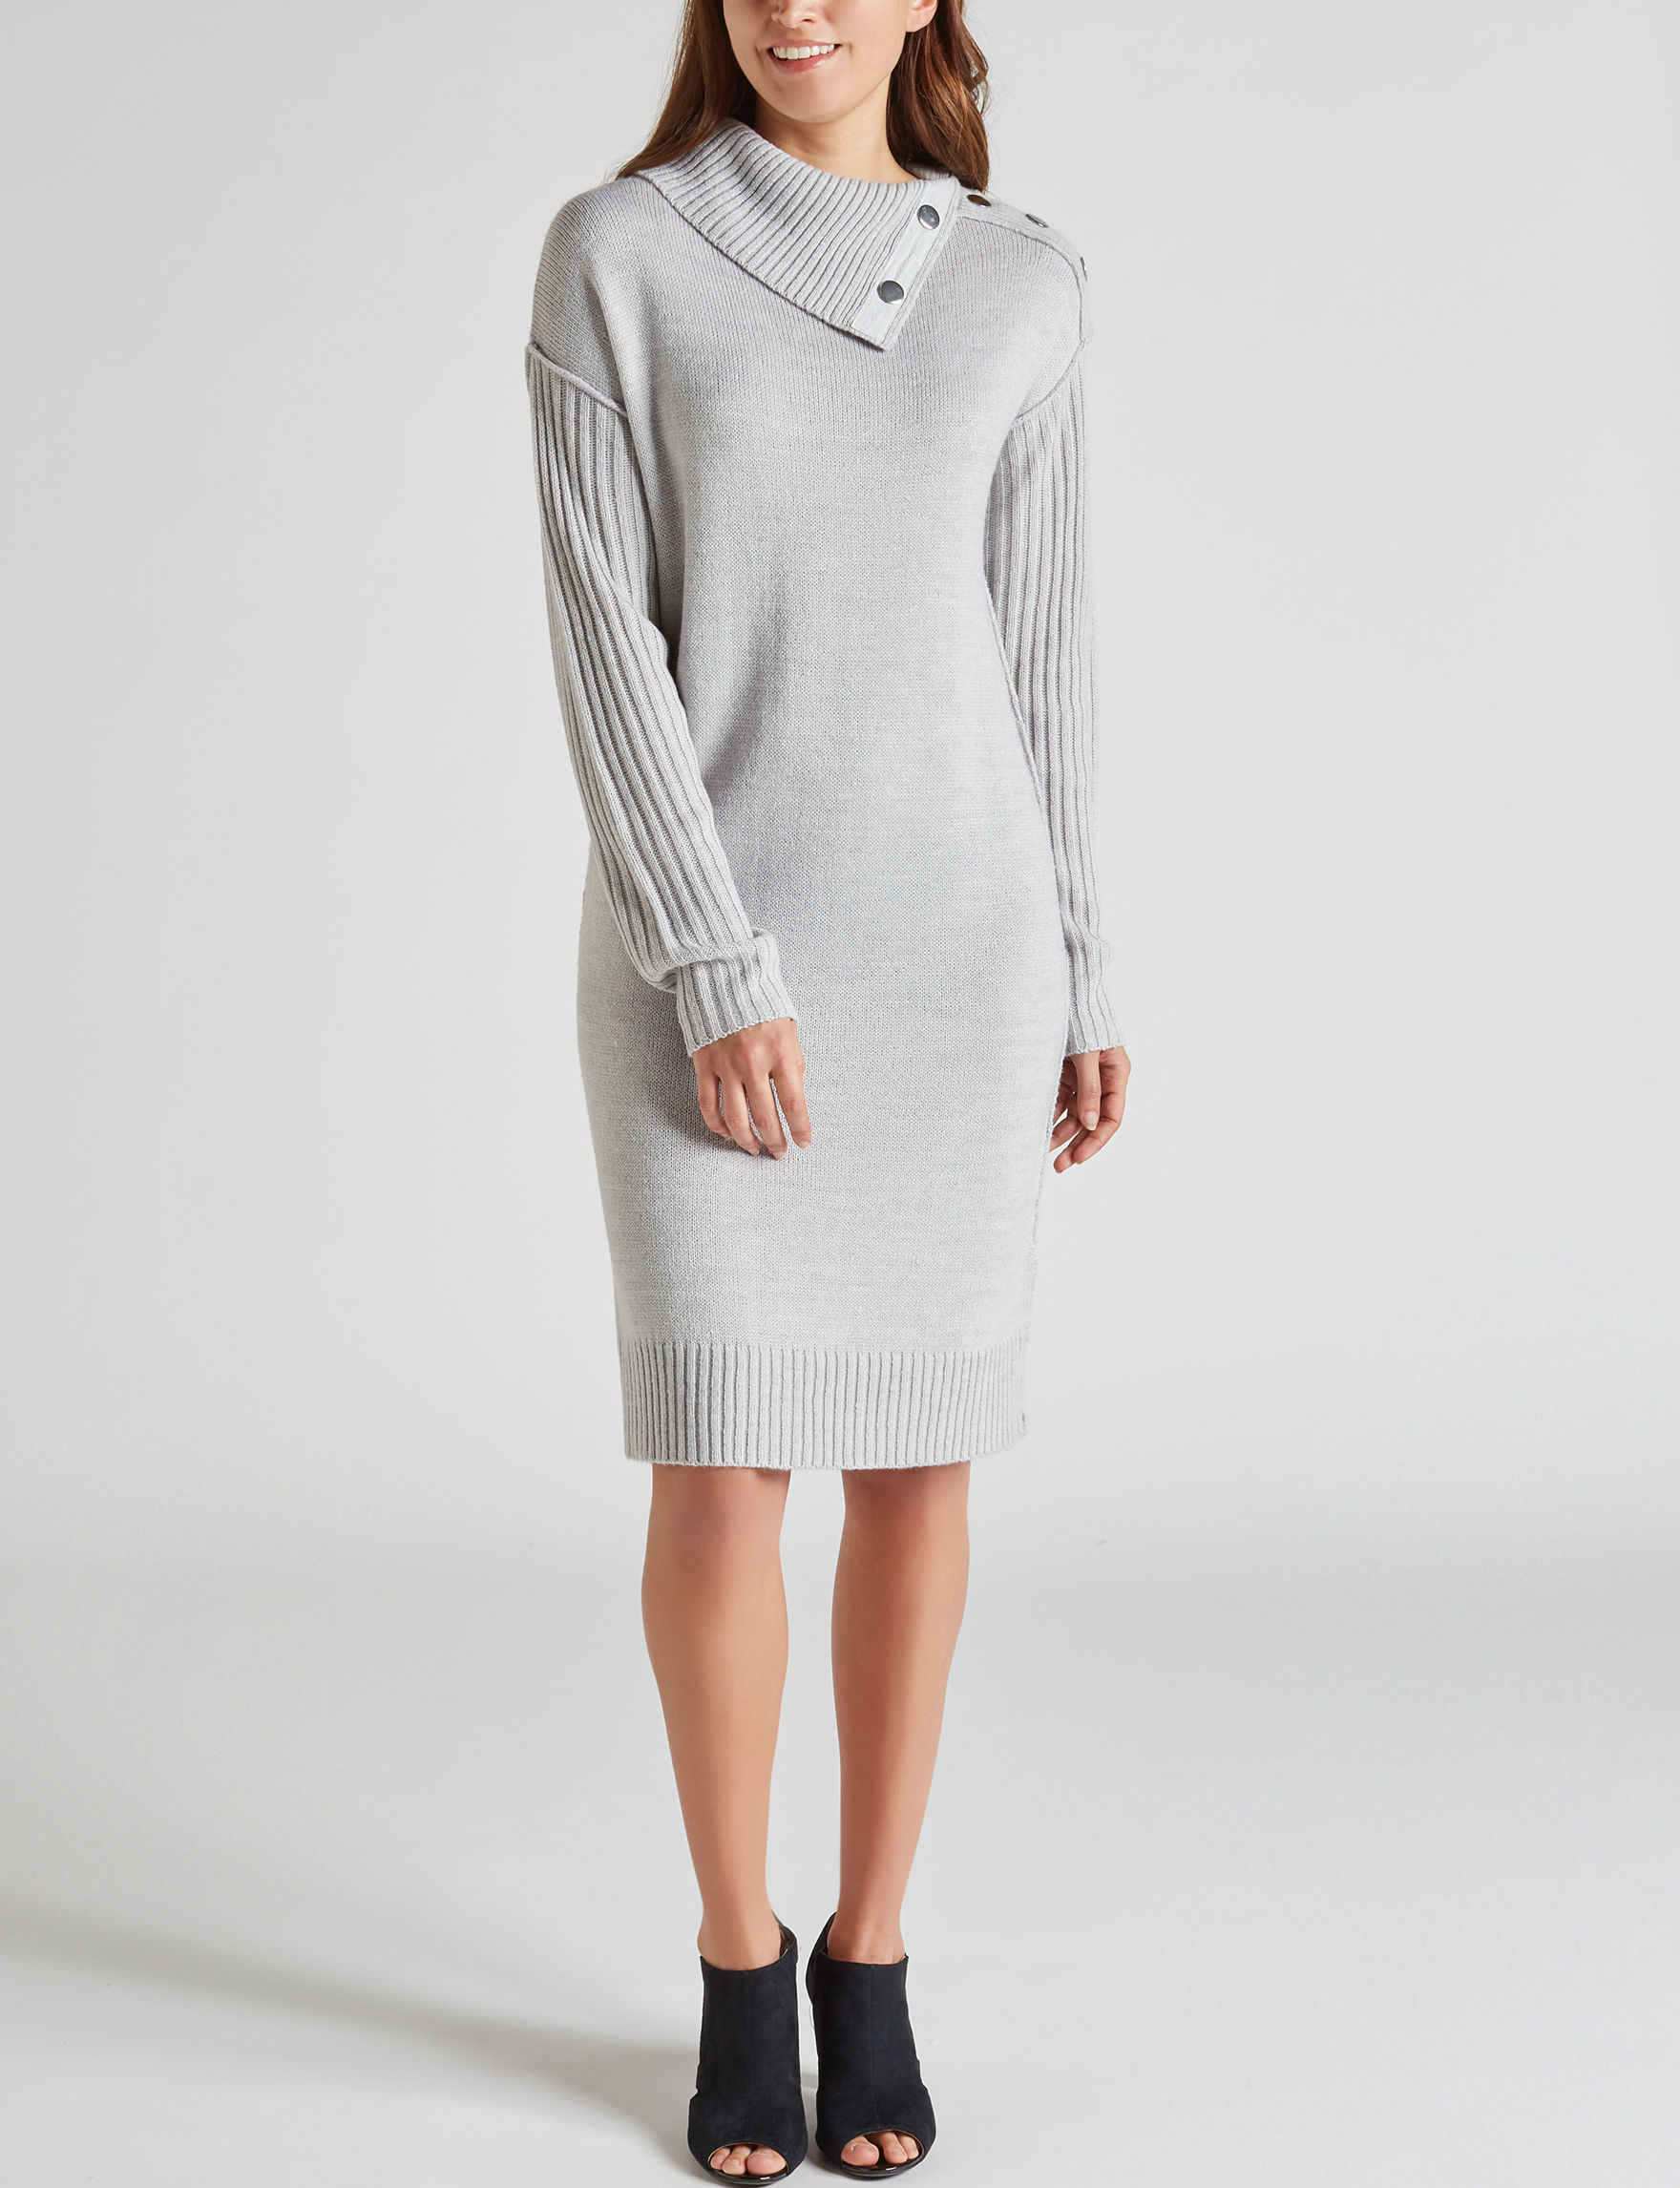 Harlow & Rose Grey Everyday & Casual Sweater Dresses